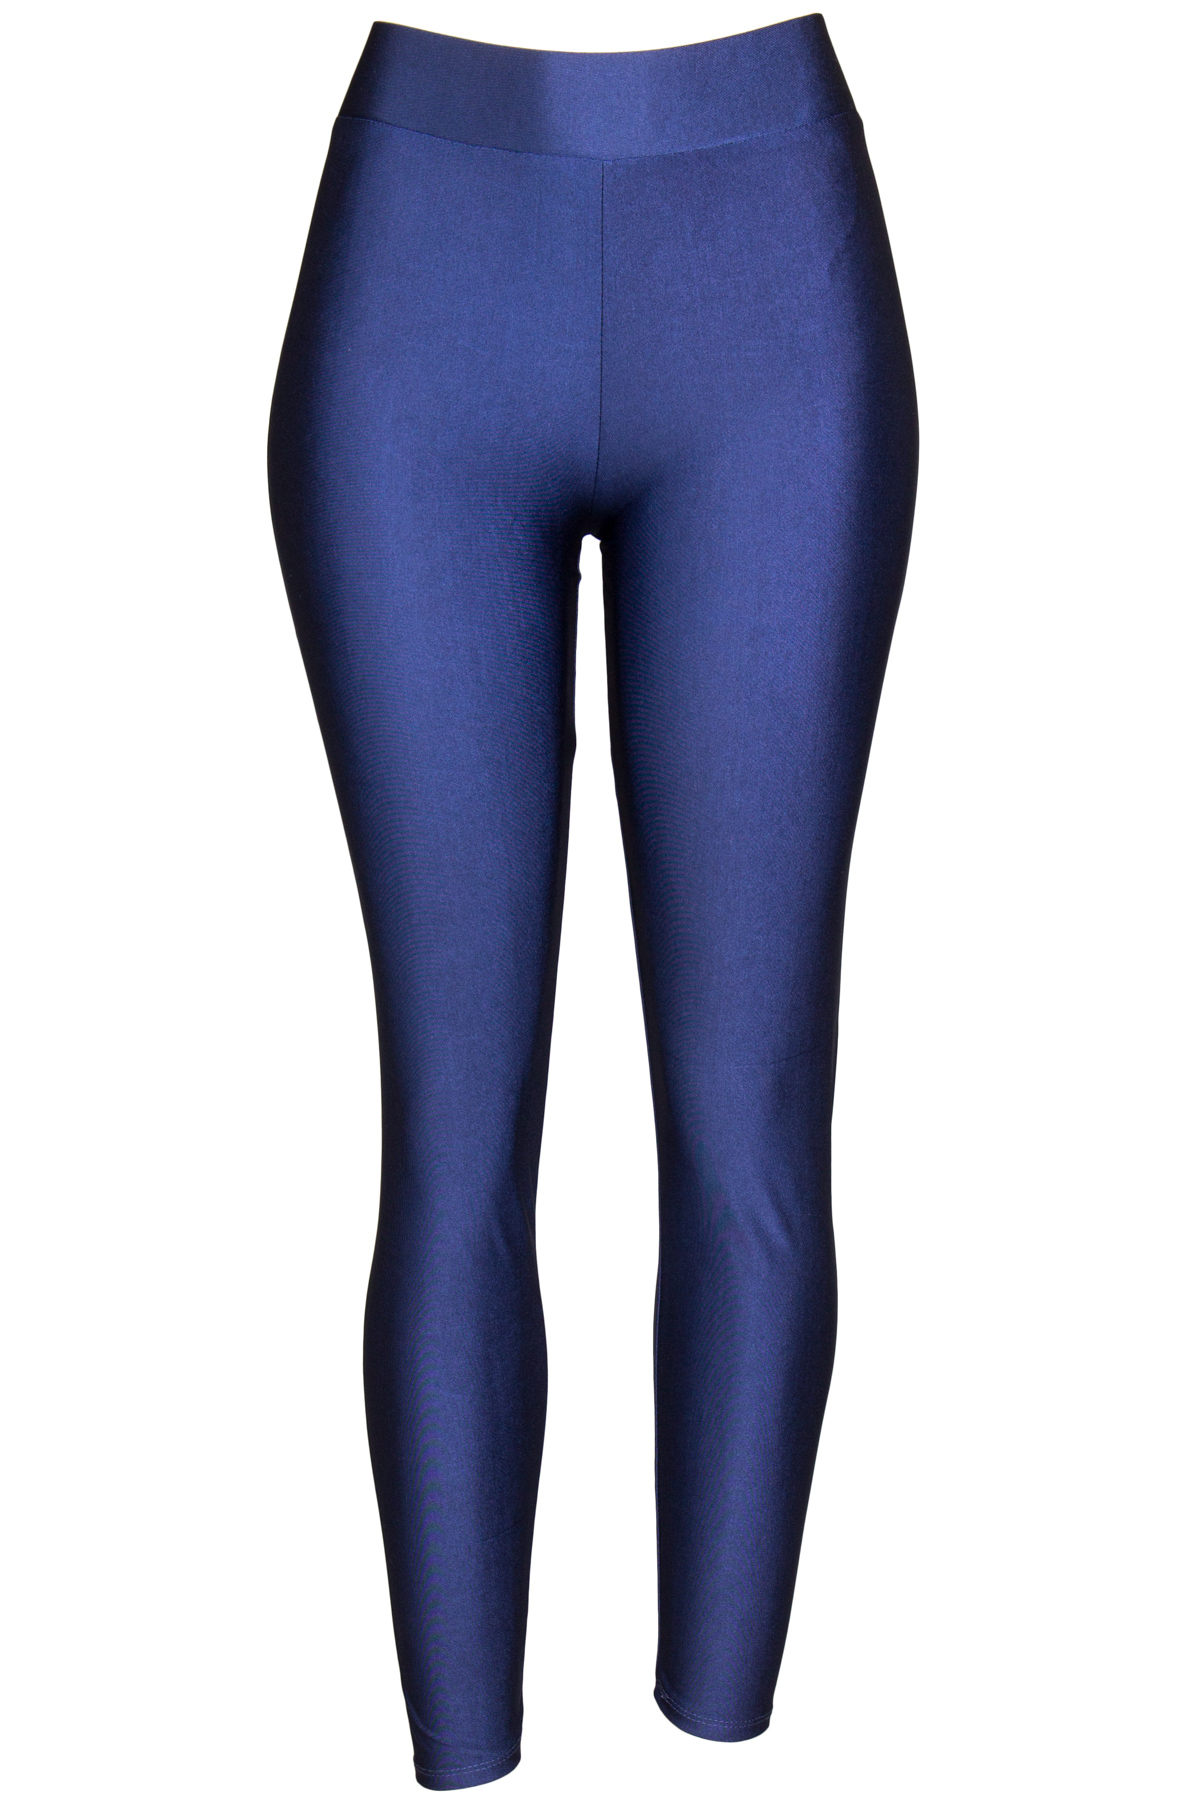 navy shiny leggings